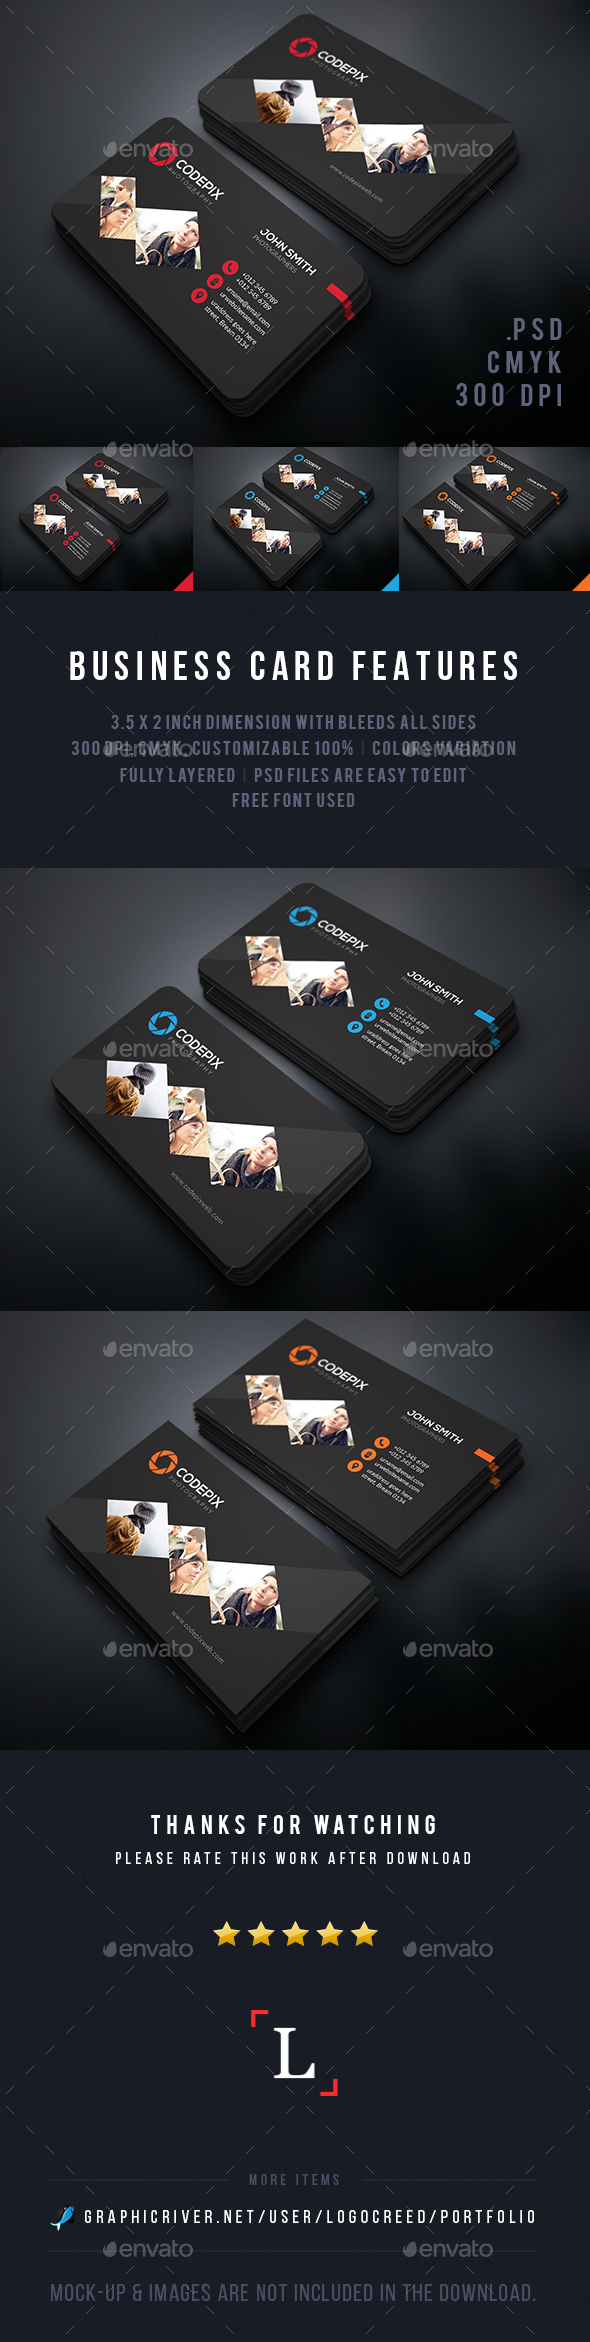 Photography Business Cards Template PSD #design Download: http://graphicriver.net/item/photography-business-cards/13801305?ref=ksioks